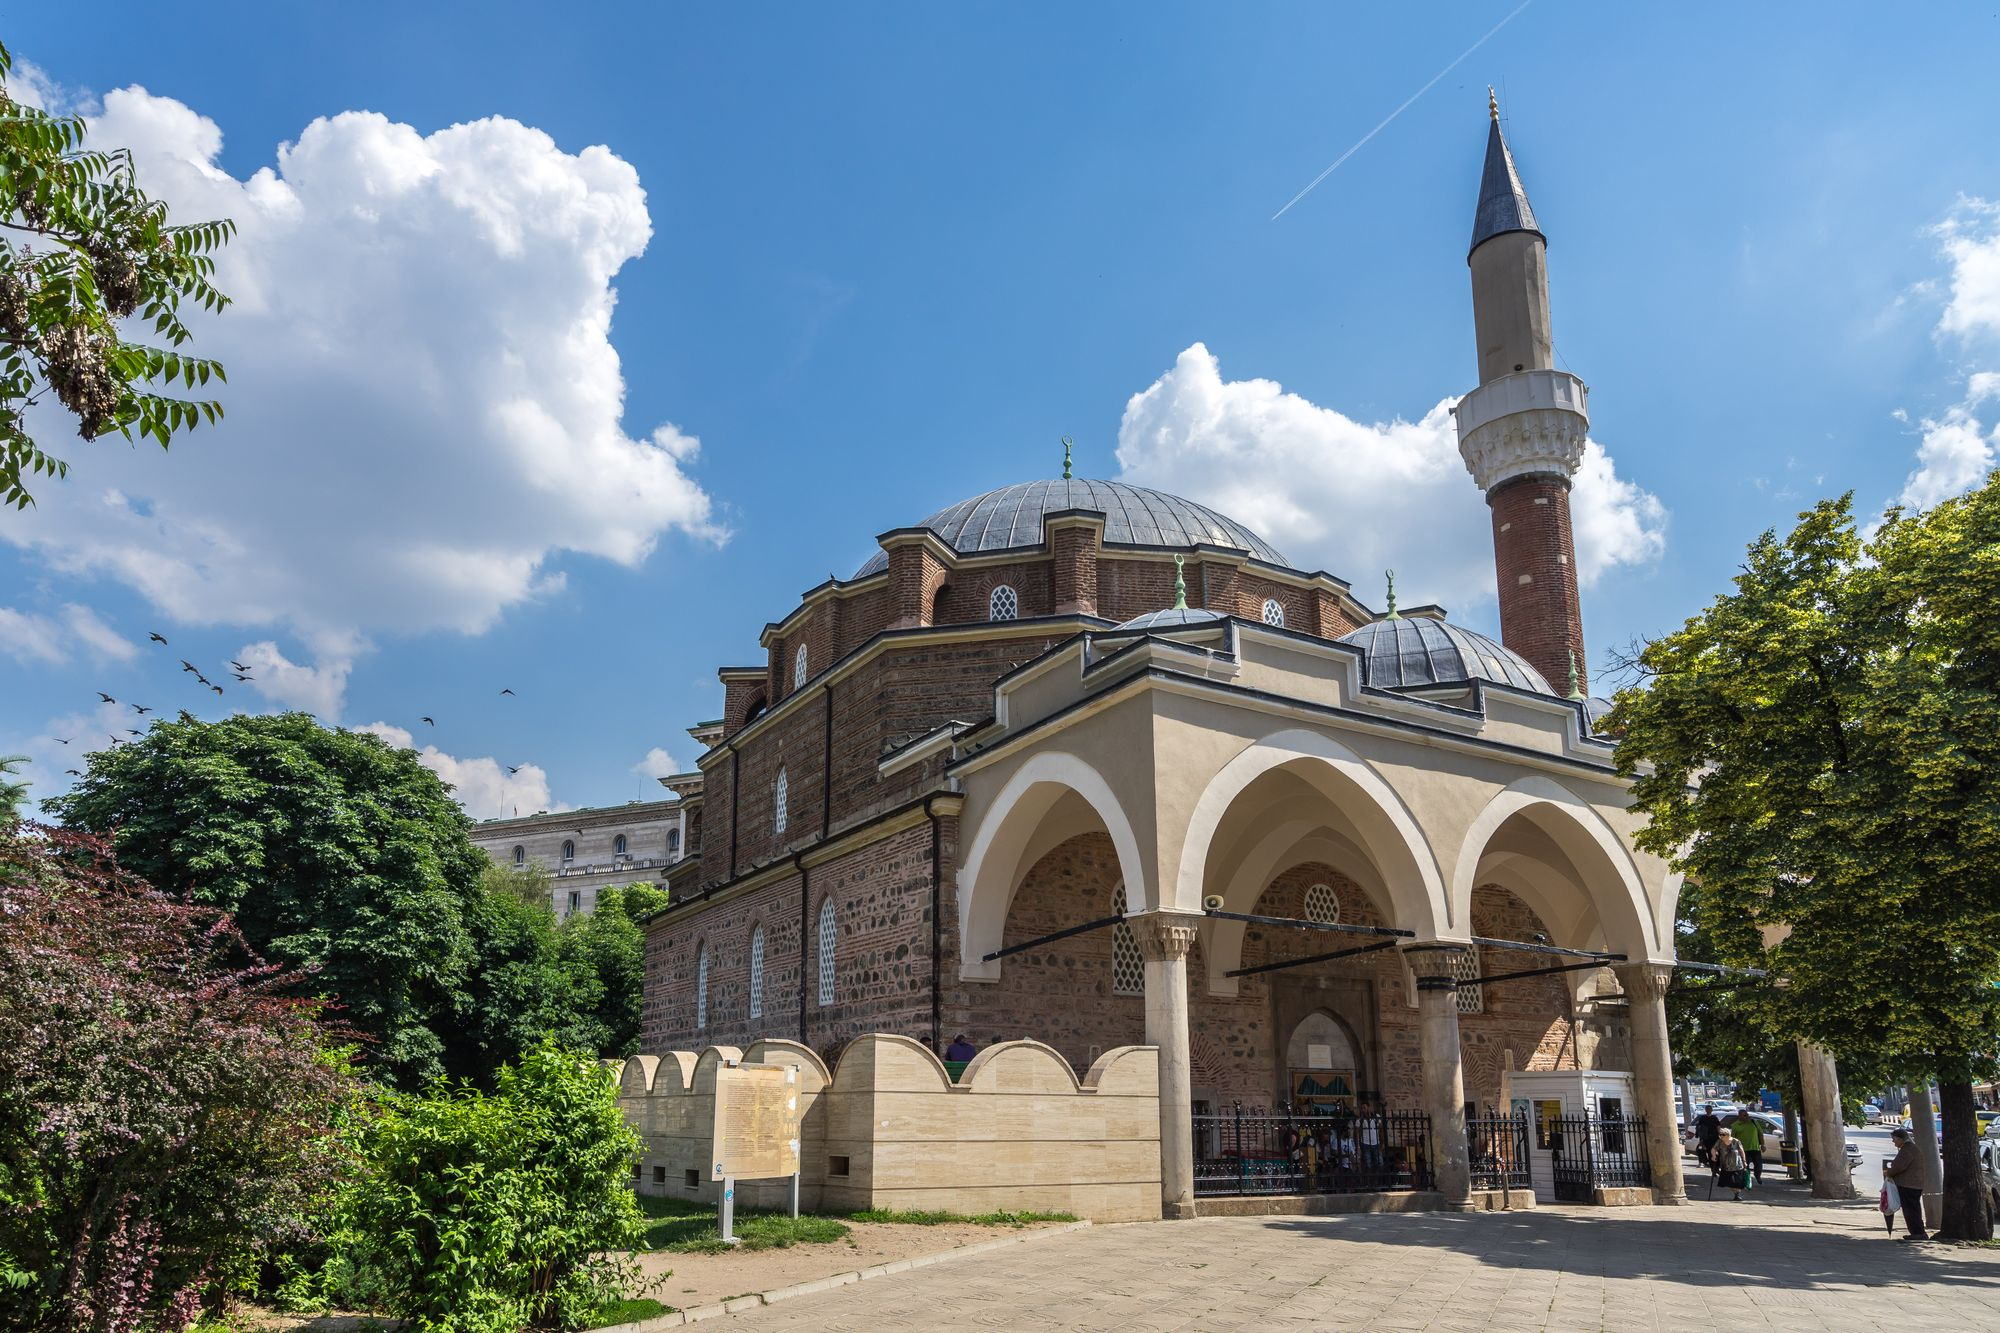 The Banya Bashi Mosque is one of Sofia's top tourist attractions